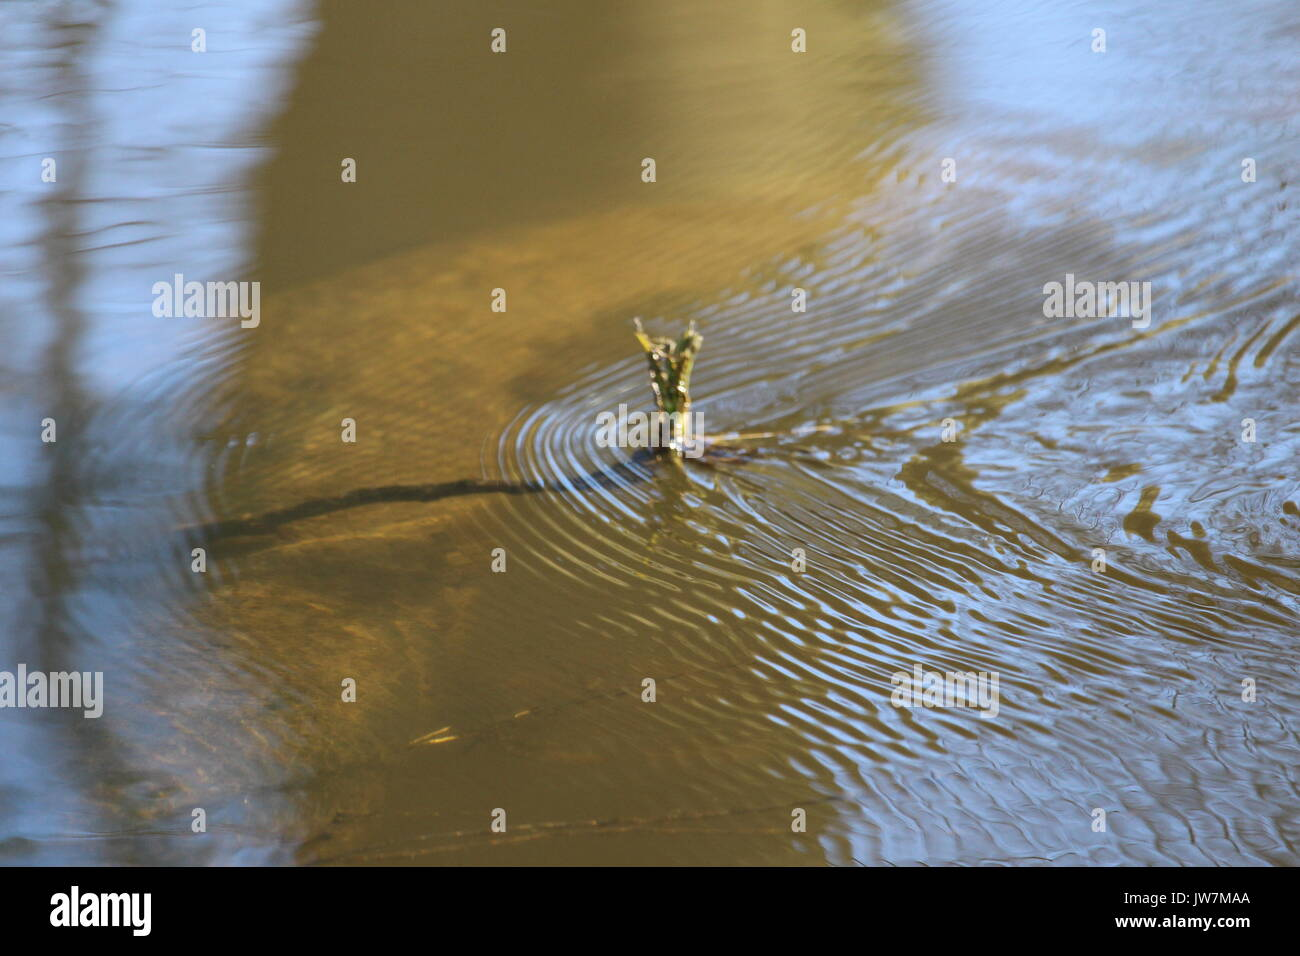 Branch in a river - Stock Image